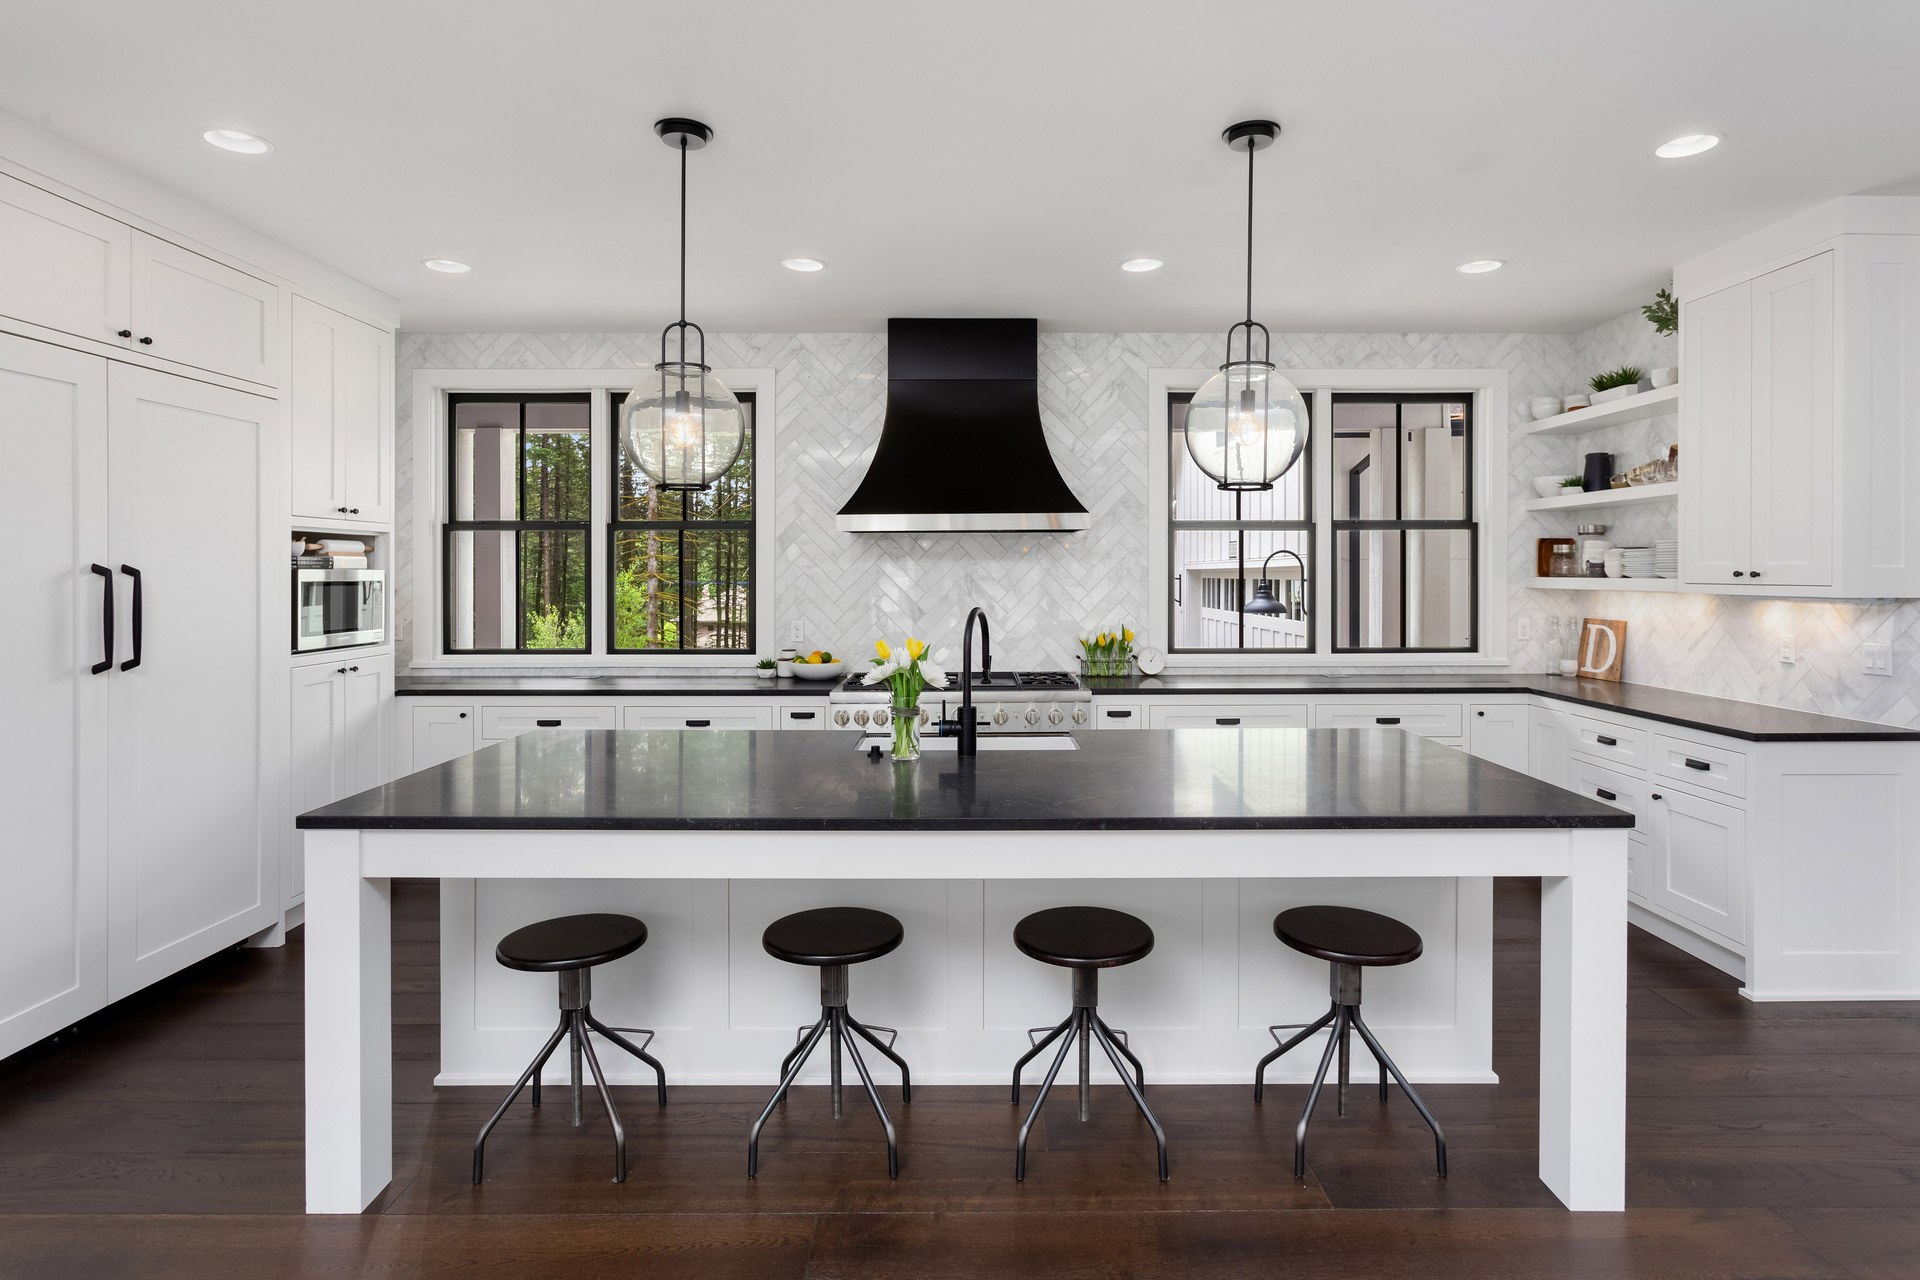 A beautiful kitchen in black and white with wooden flooring